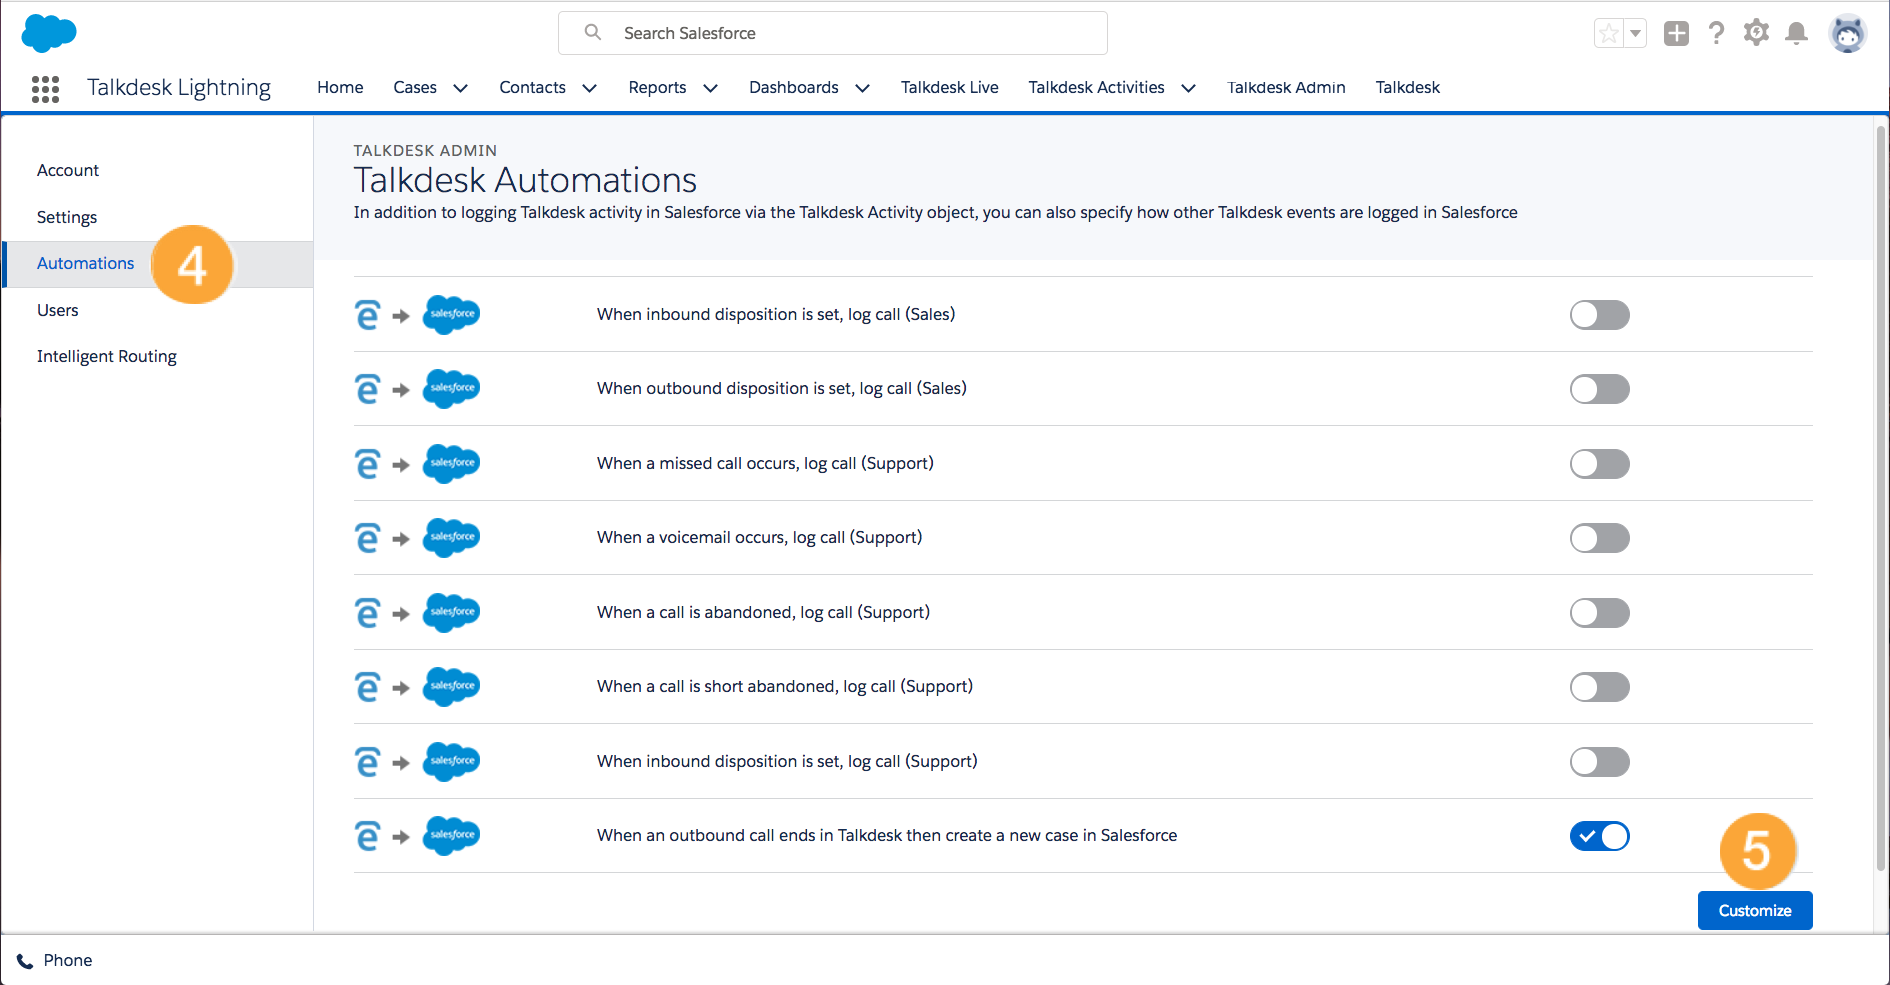 Talkdesk_for_Salesforce_New_Admin_Automations.png